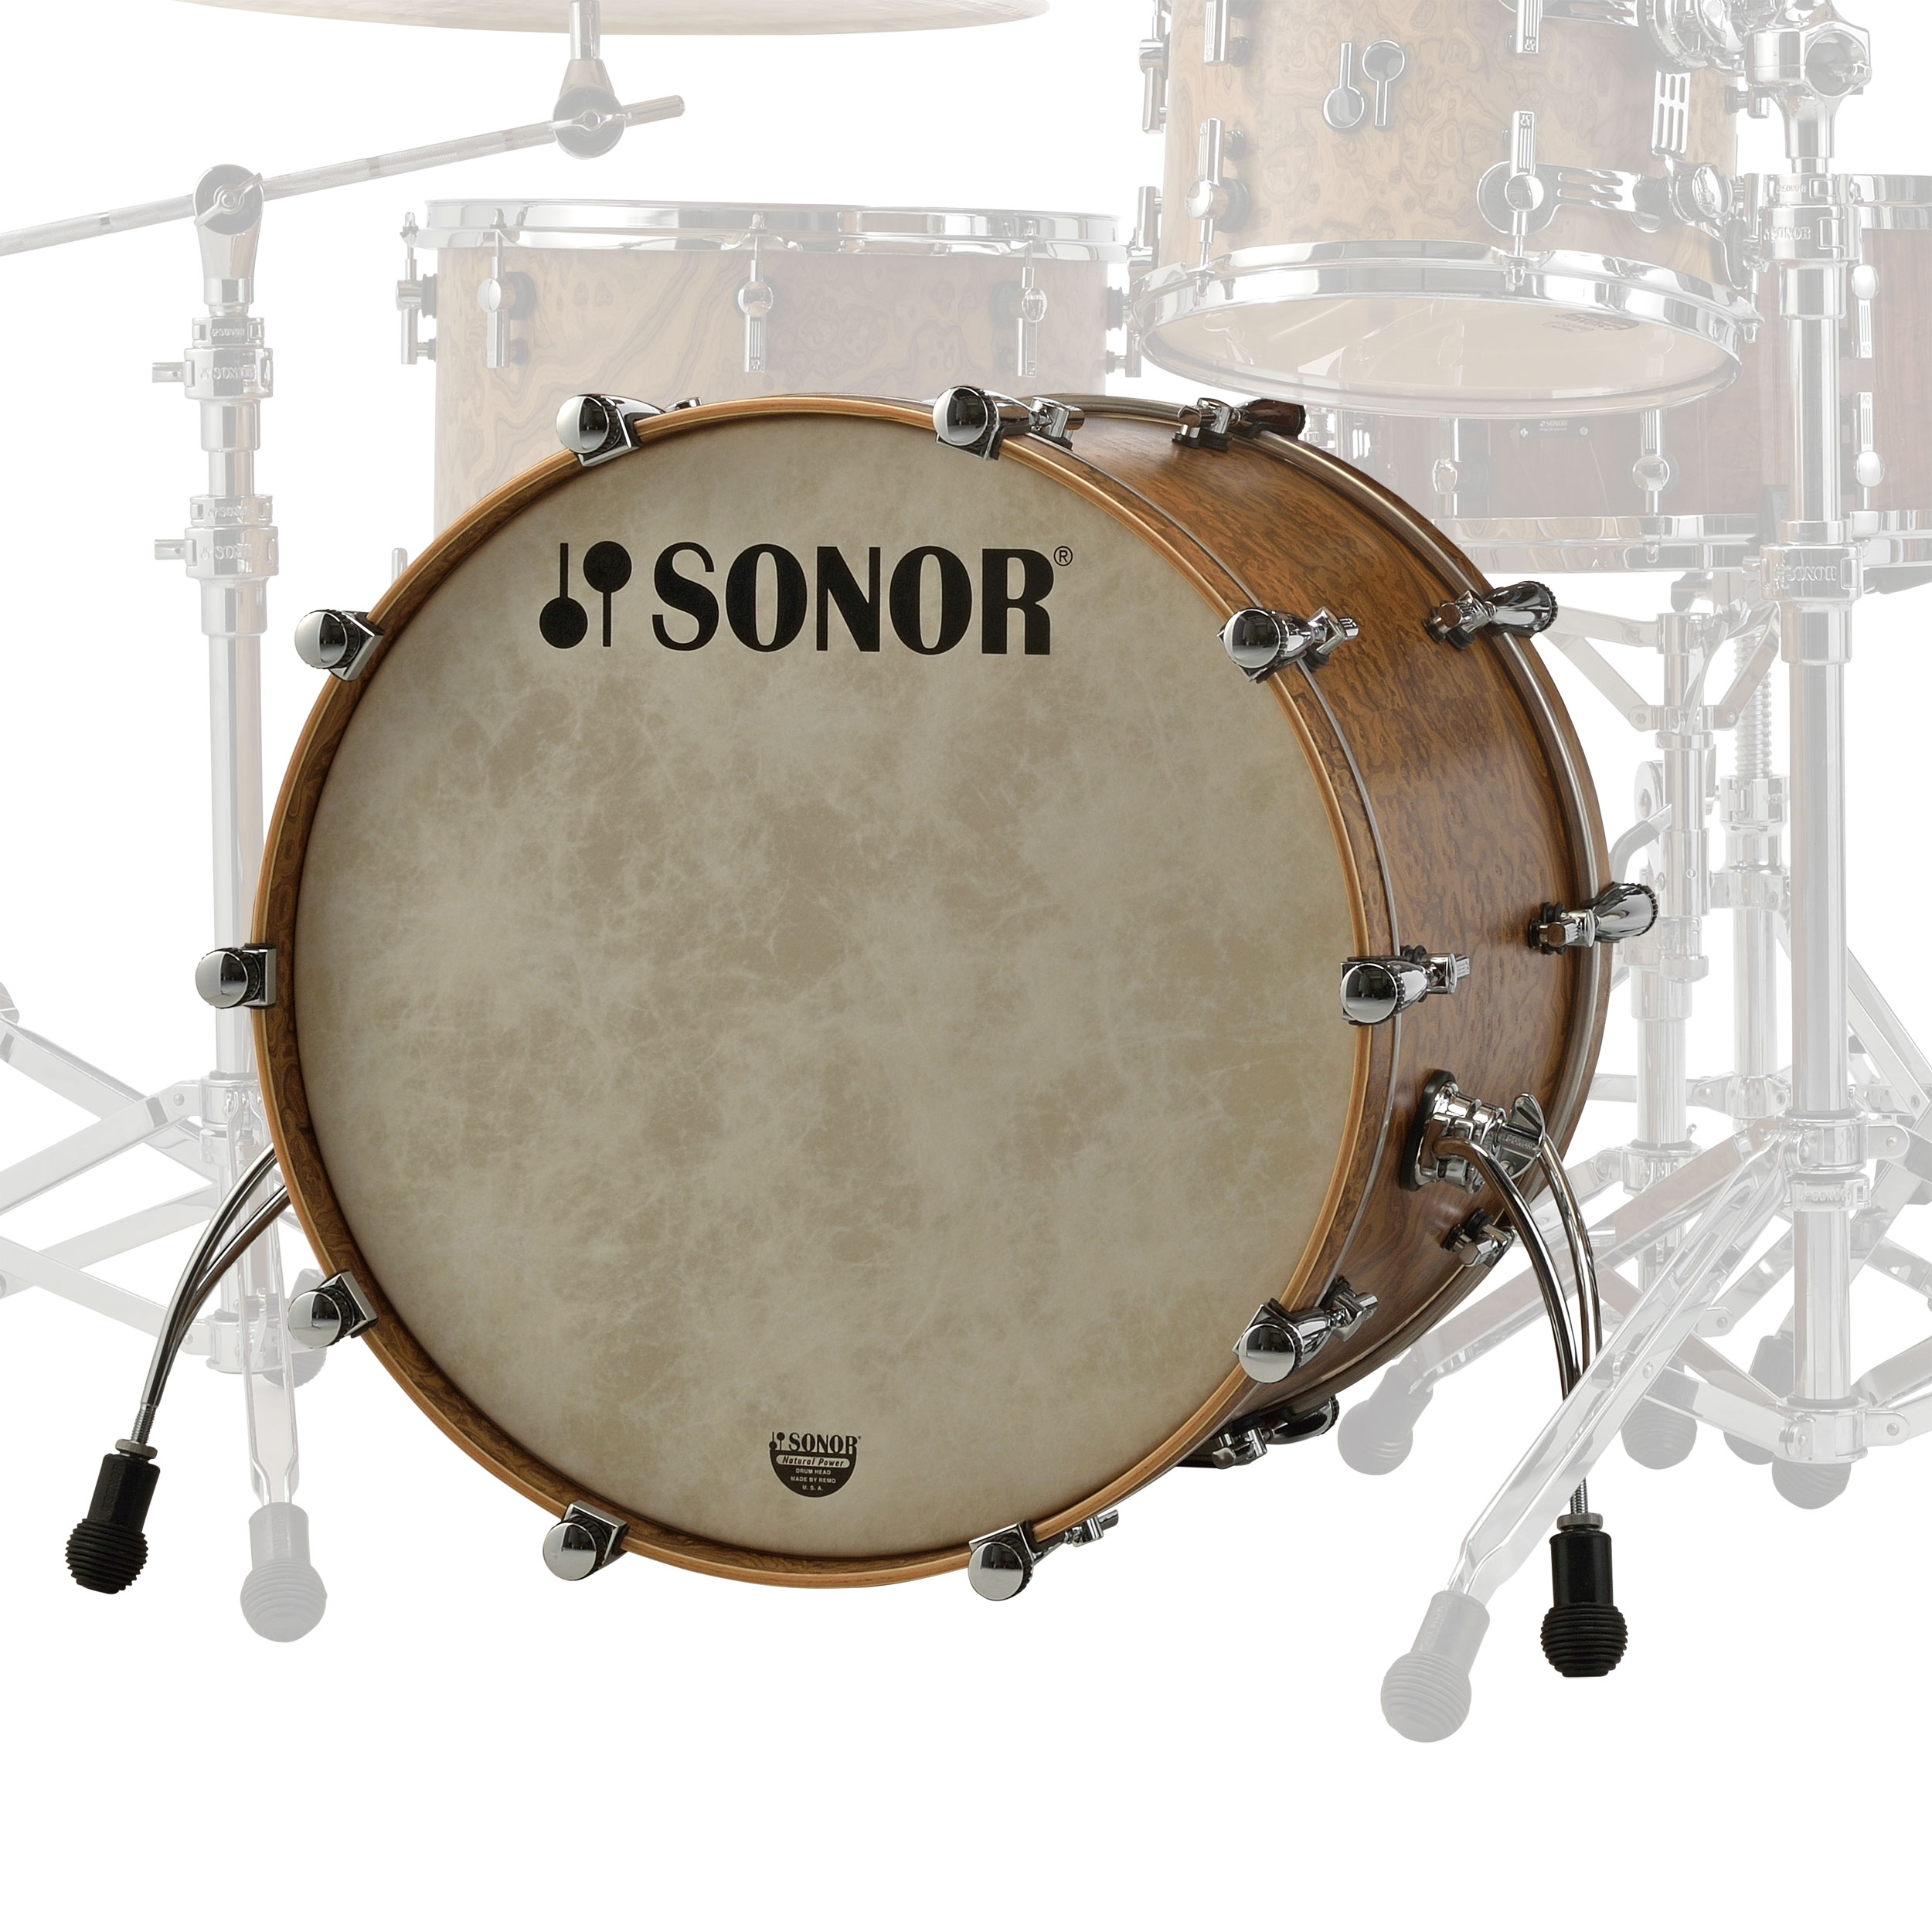 "Sonor 20"" x 16"" SQ2 Vintage Maple Bass Drum"